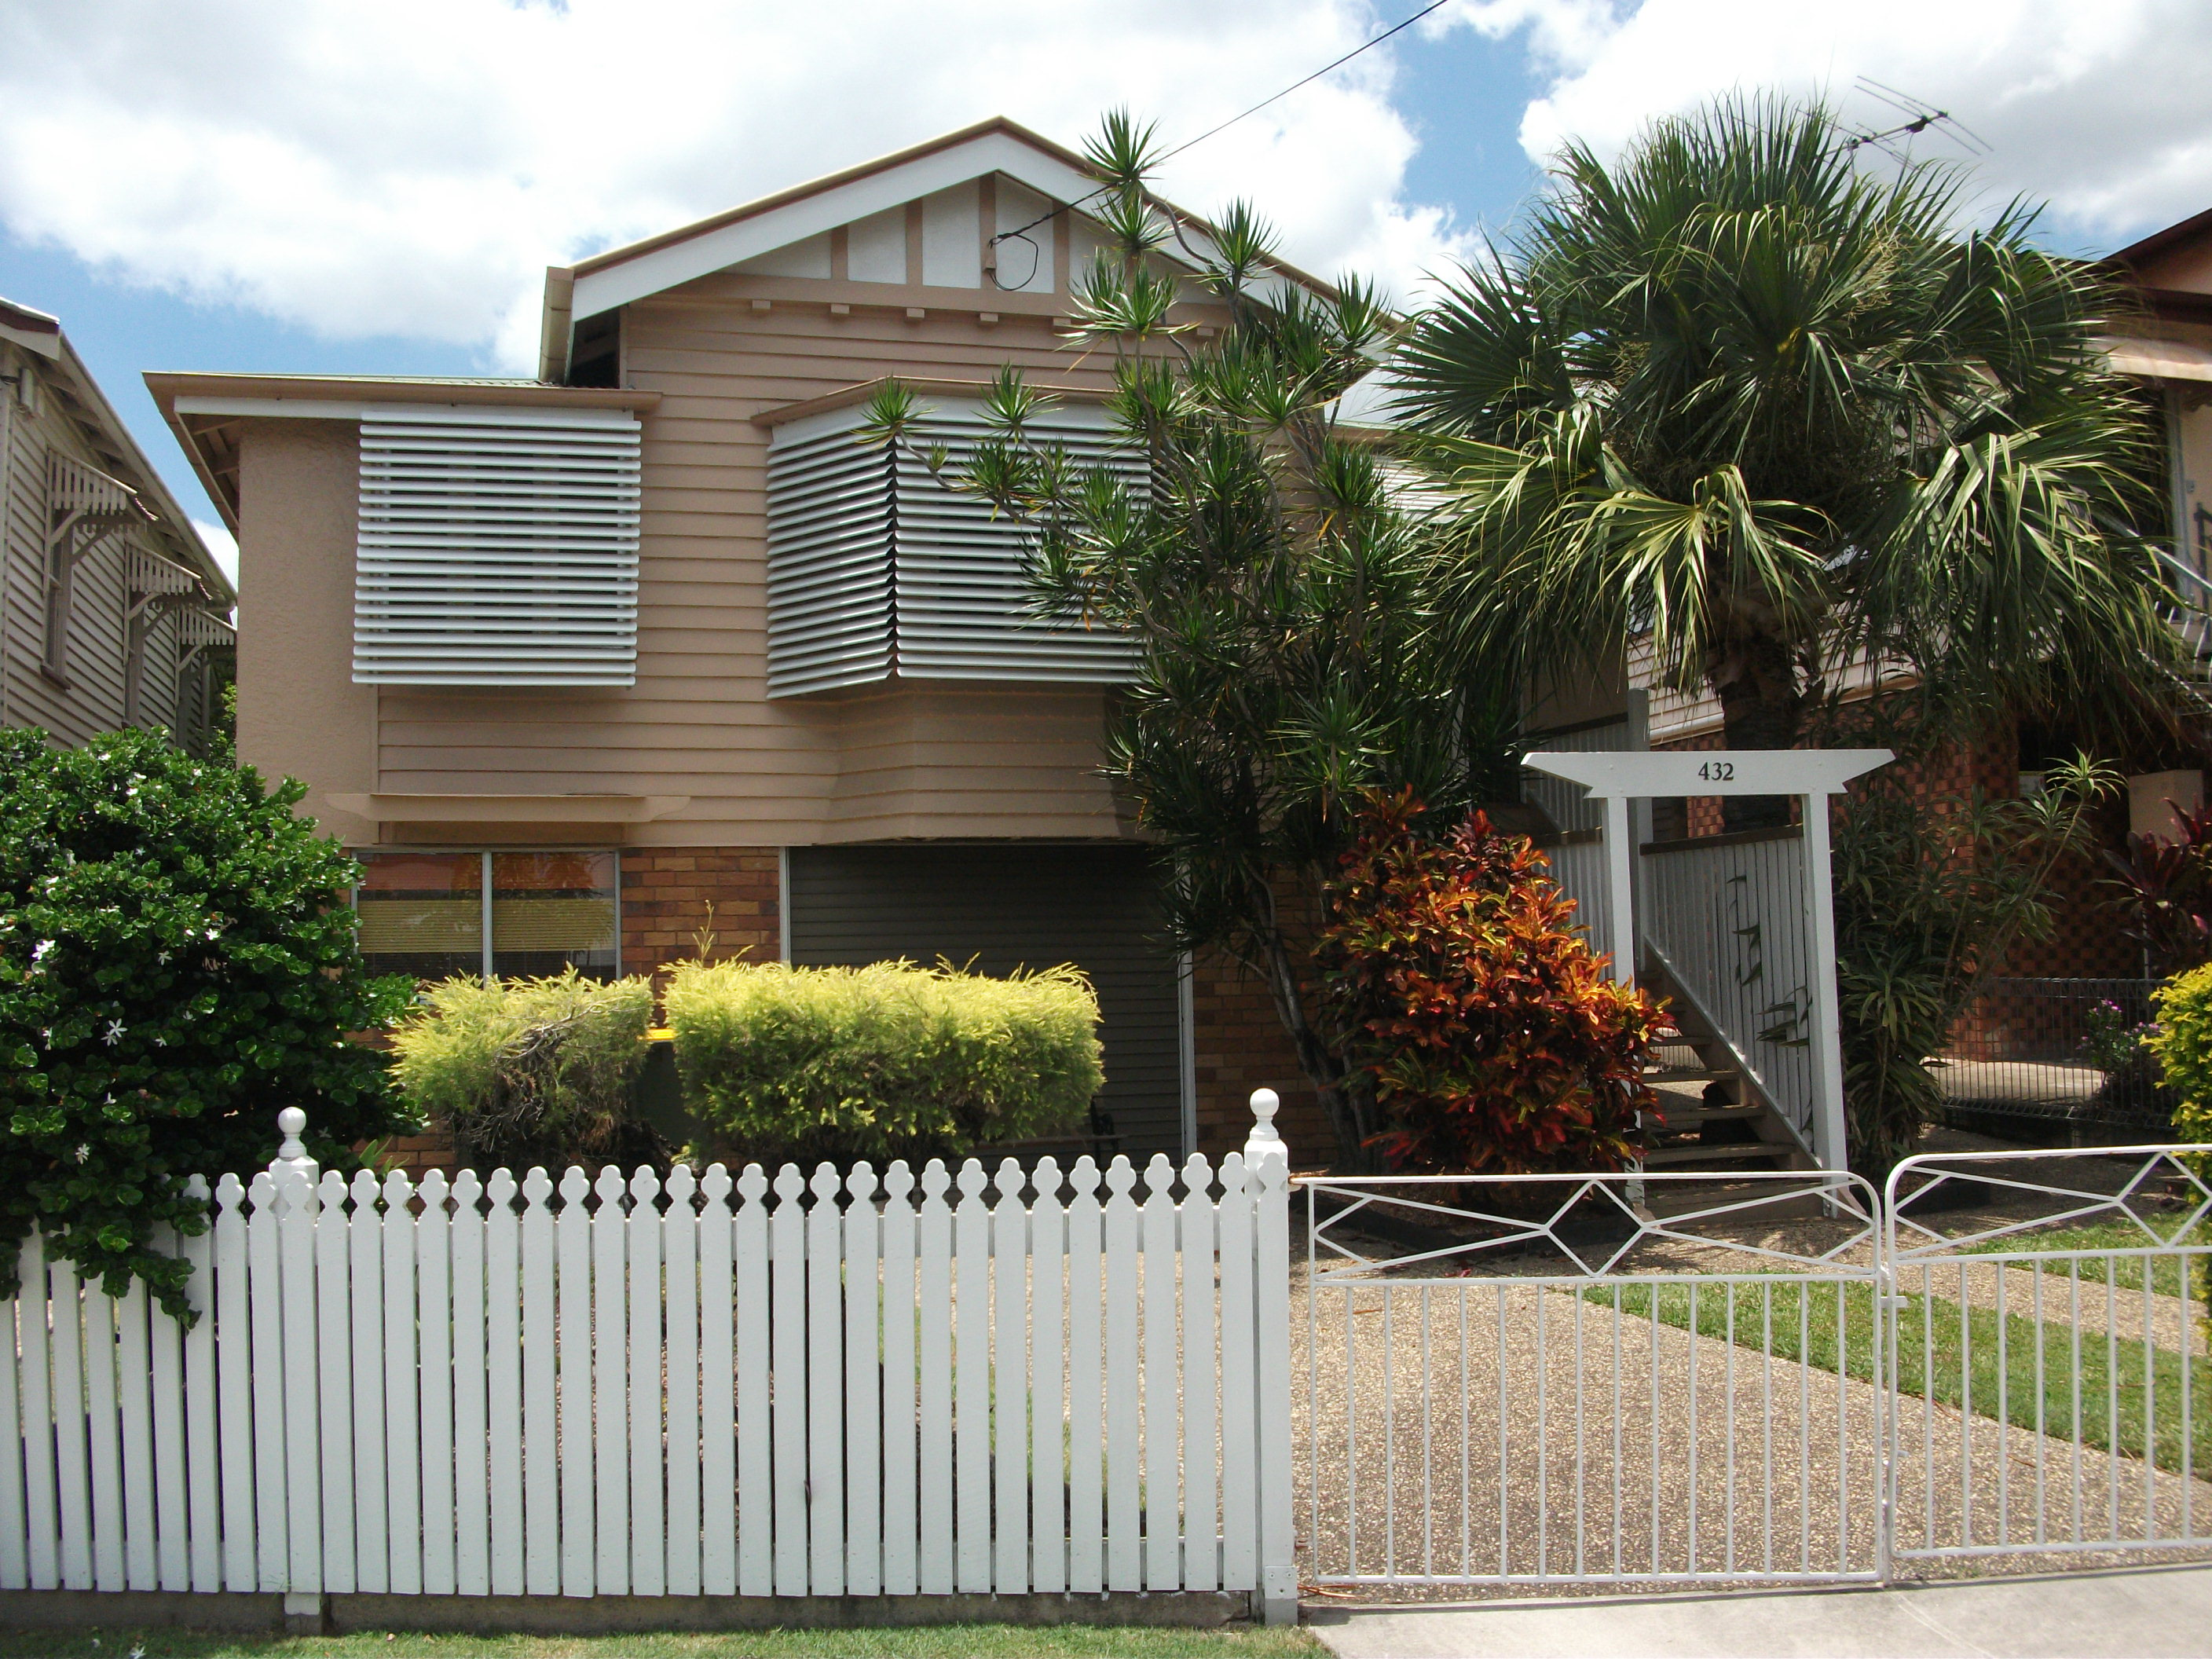 4 BEDROOM HIGHSET QUEENSLANDER. A BEAUTIFULLY MAINTAINED PIECE OF YESTERYEAR.